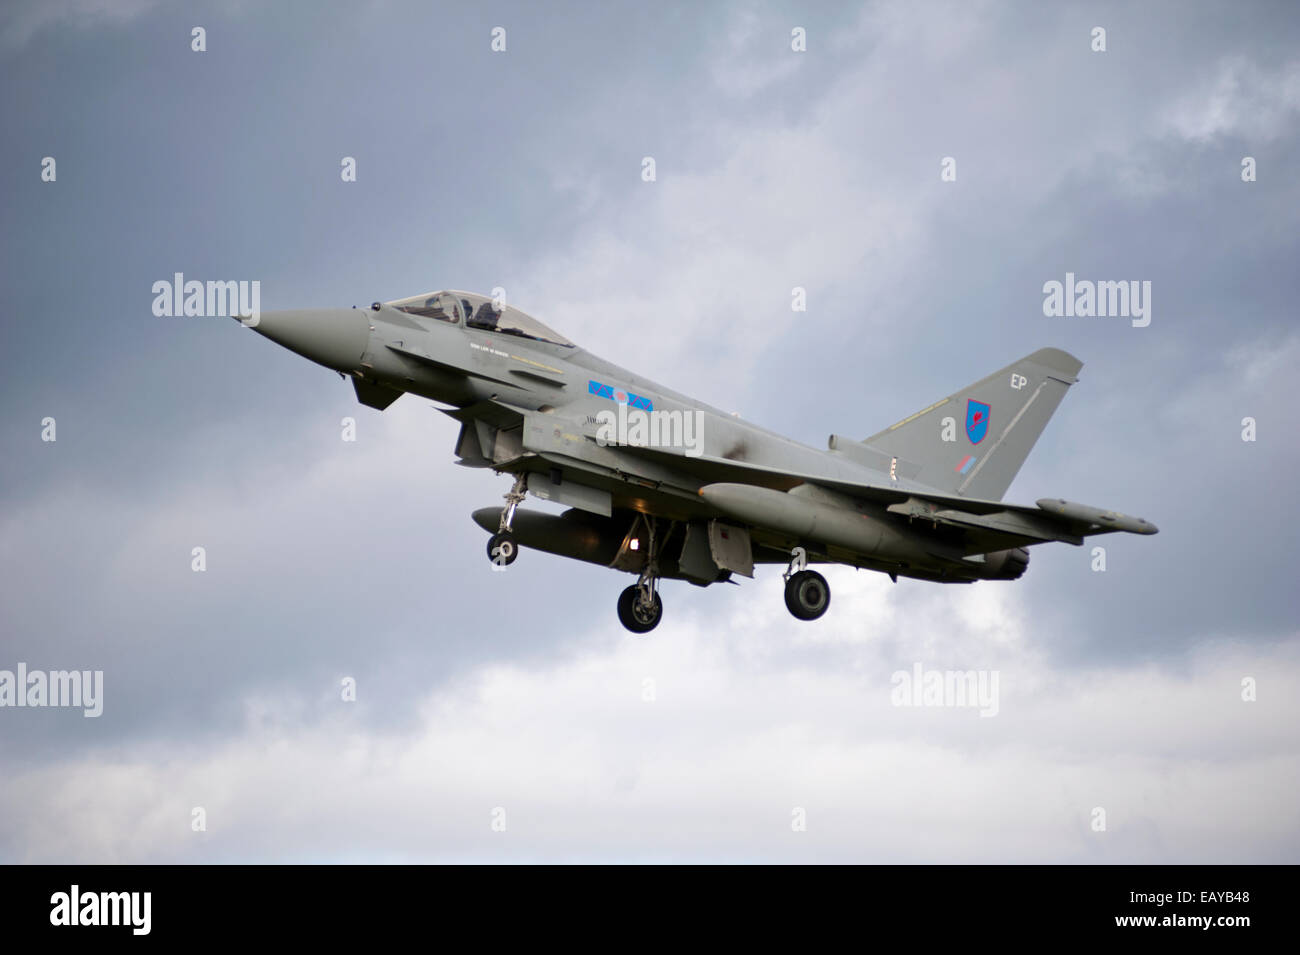 Eurofighter Typhoon FRG4 Military Fast Jet Fighter - Stock Image